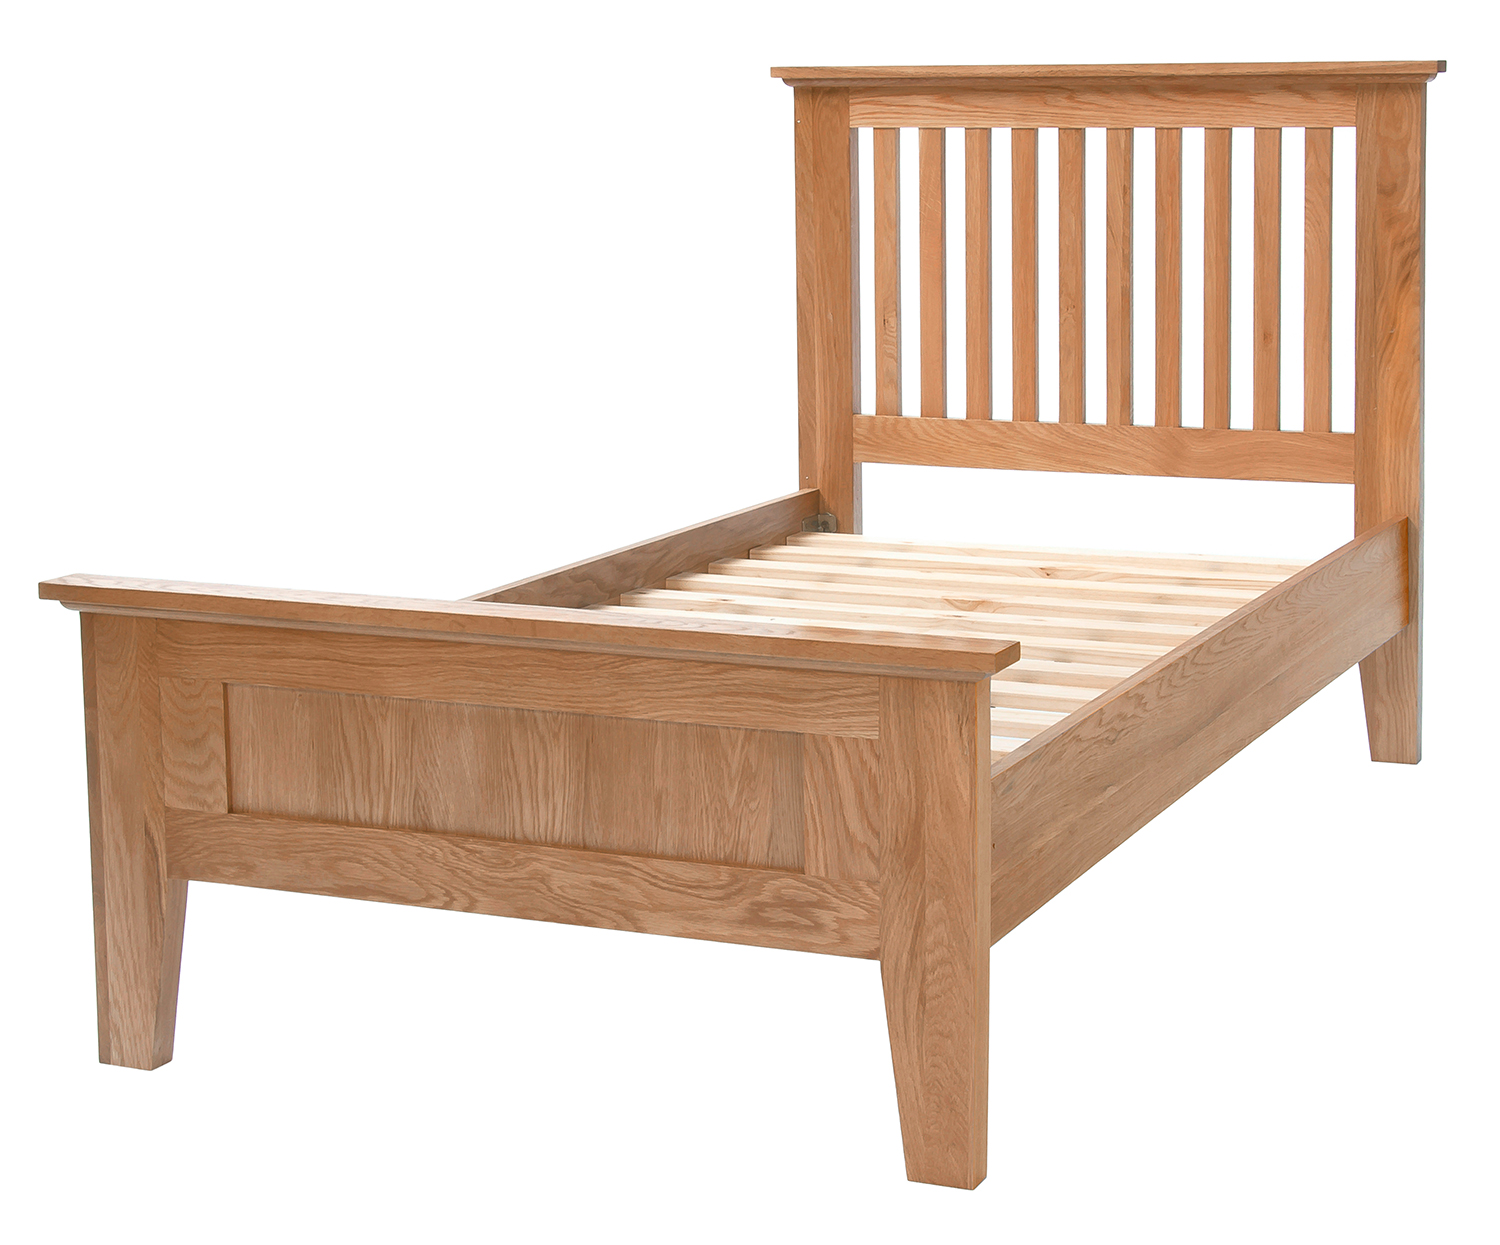 3 Single Oak Bed Frame